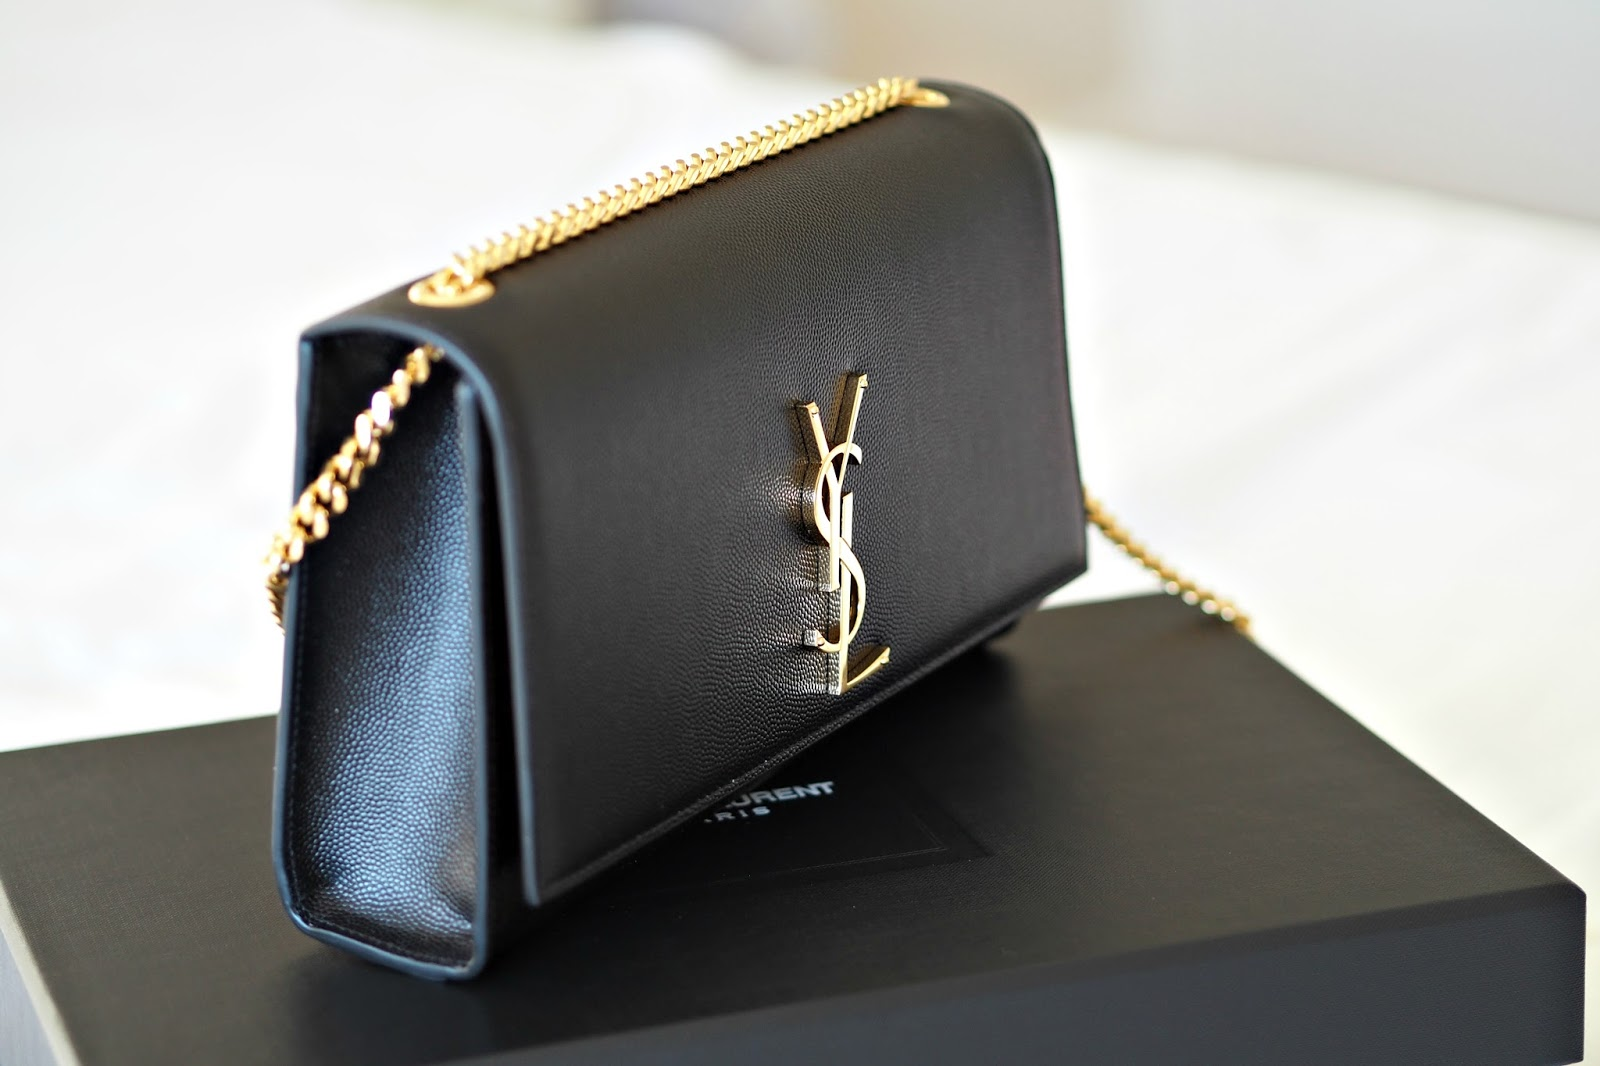 Saint Laurent Classic Medium Kate Monogram Handbag in black, bond street